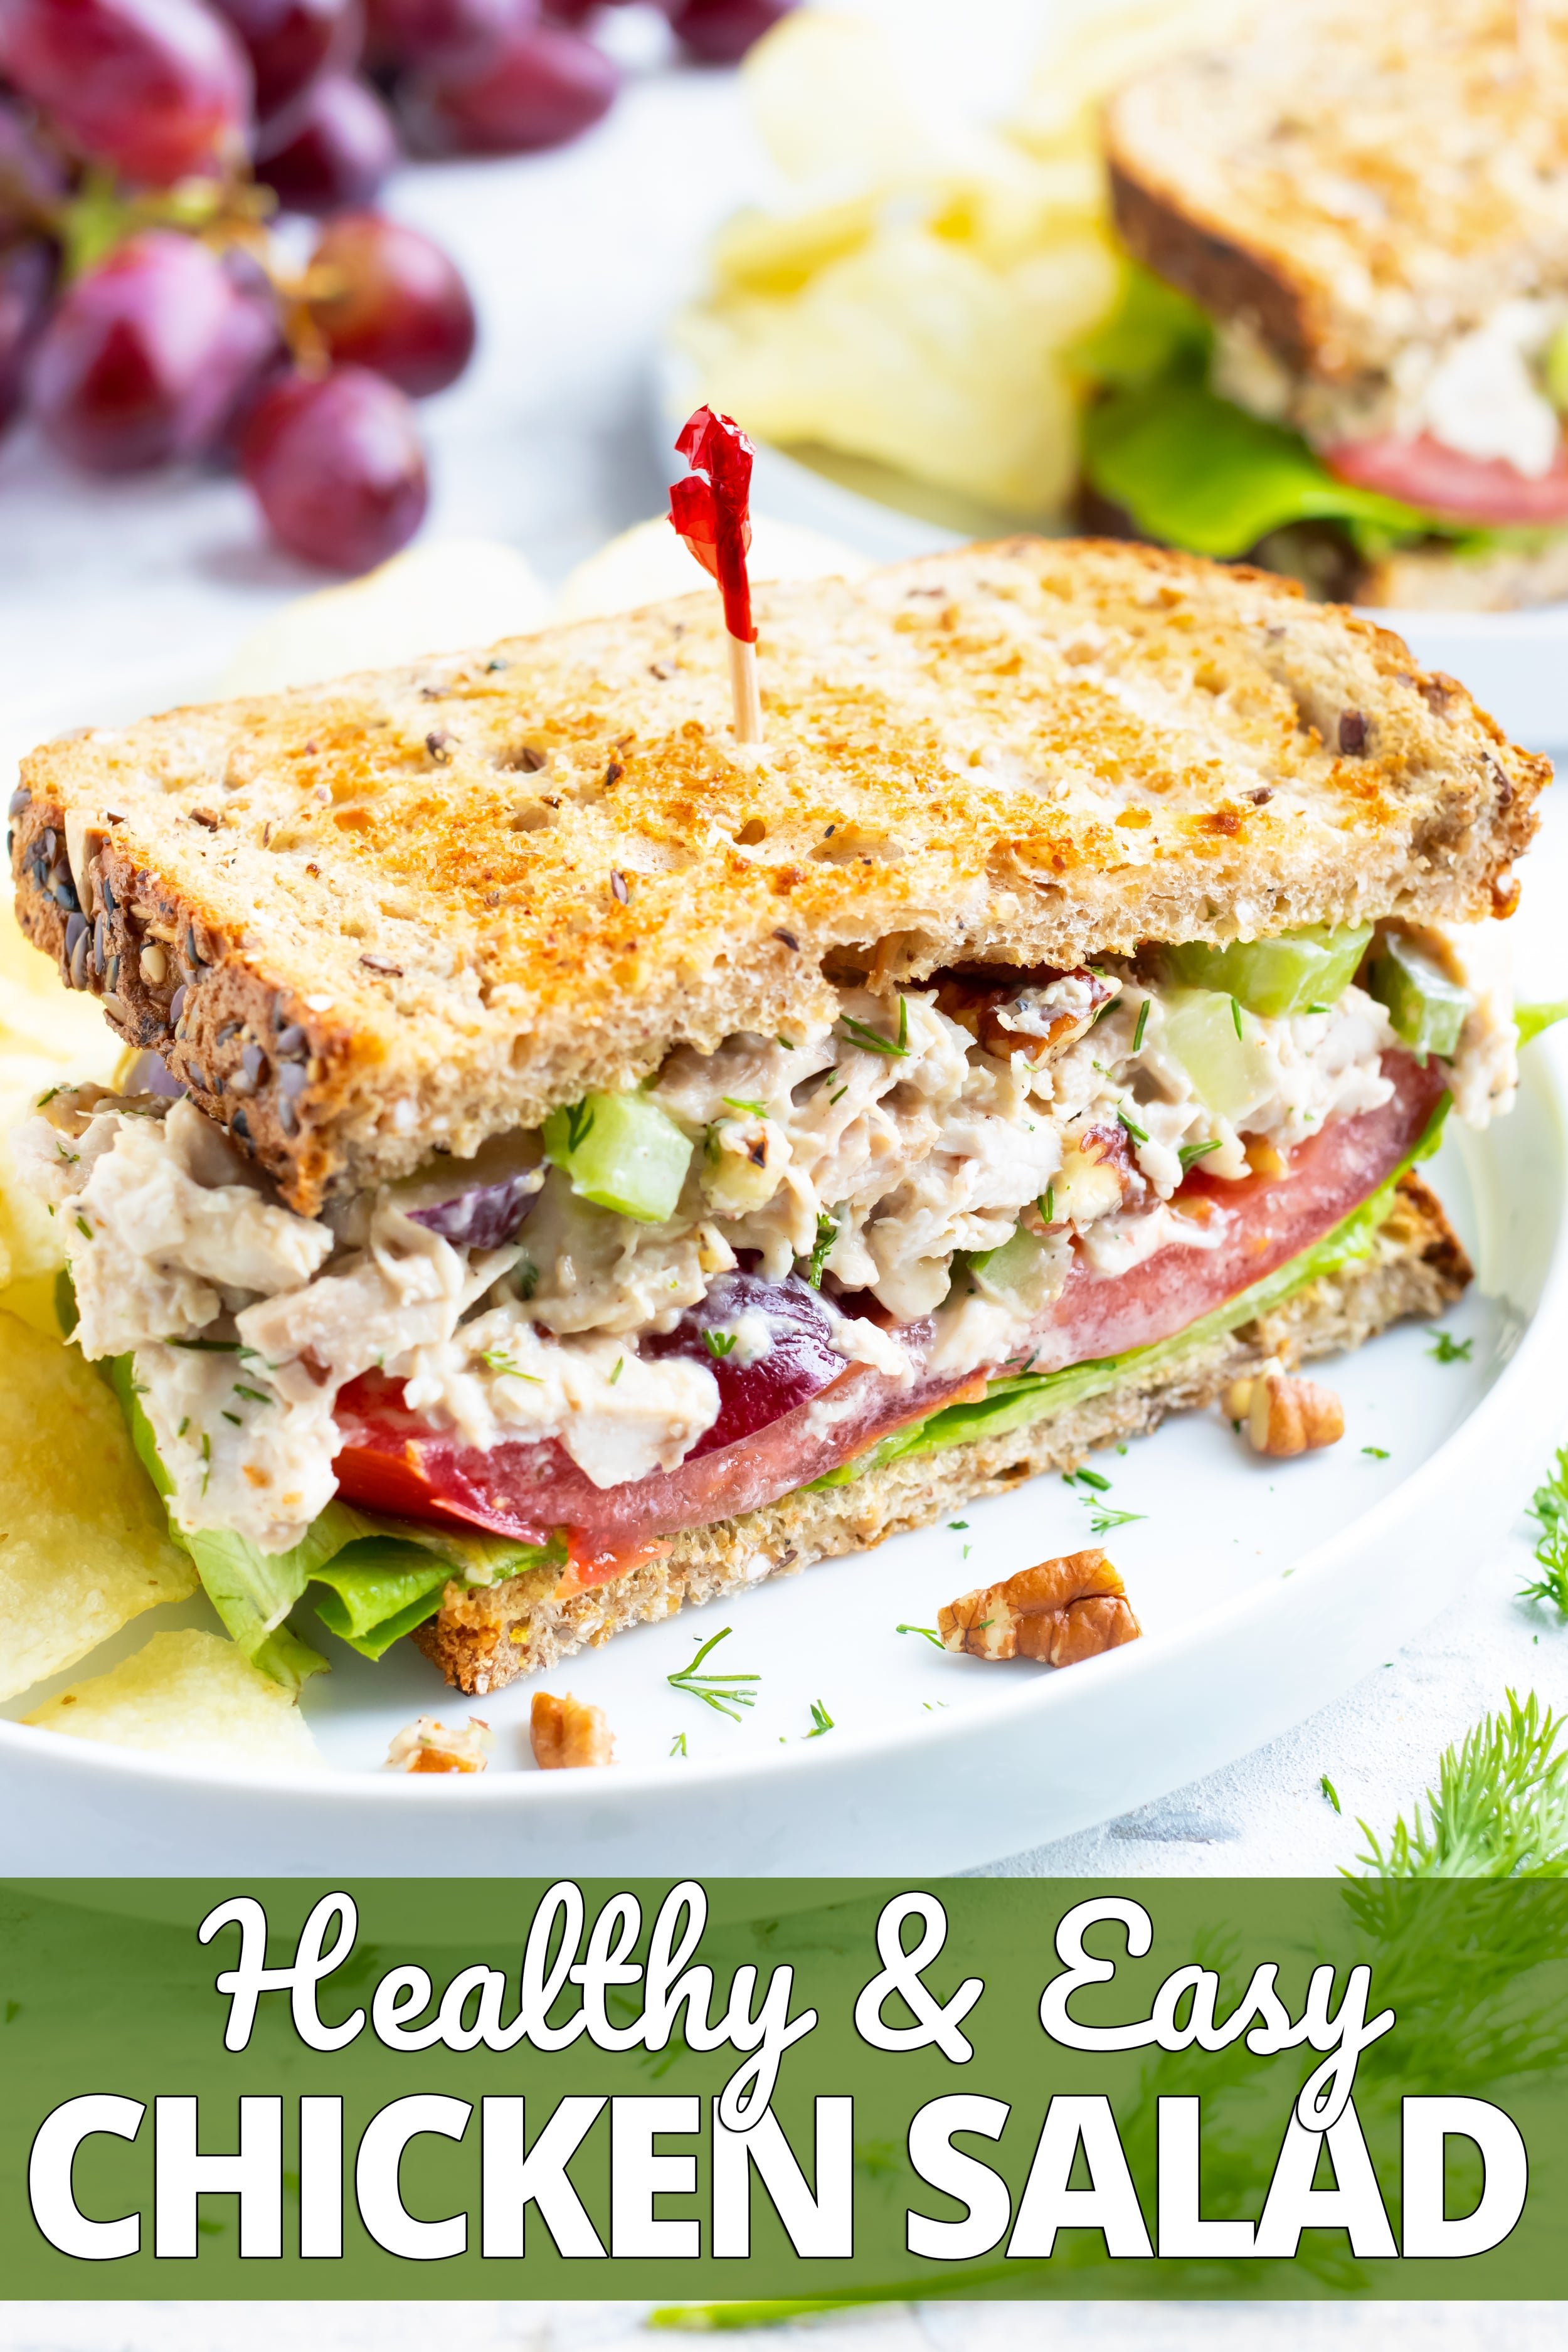 Chicken salad sandwich with a red toothpick on a white plate with potato chips.